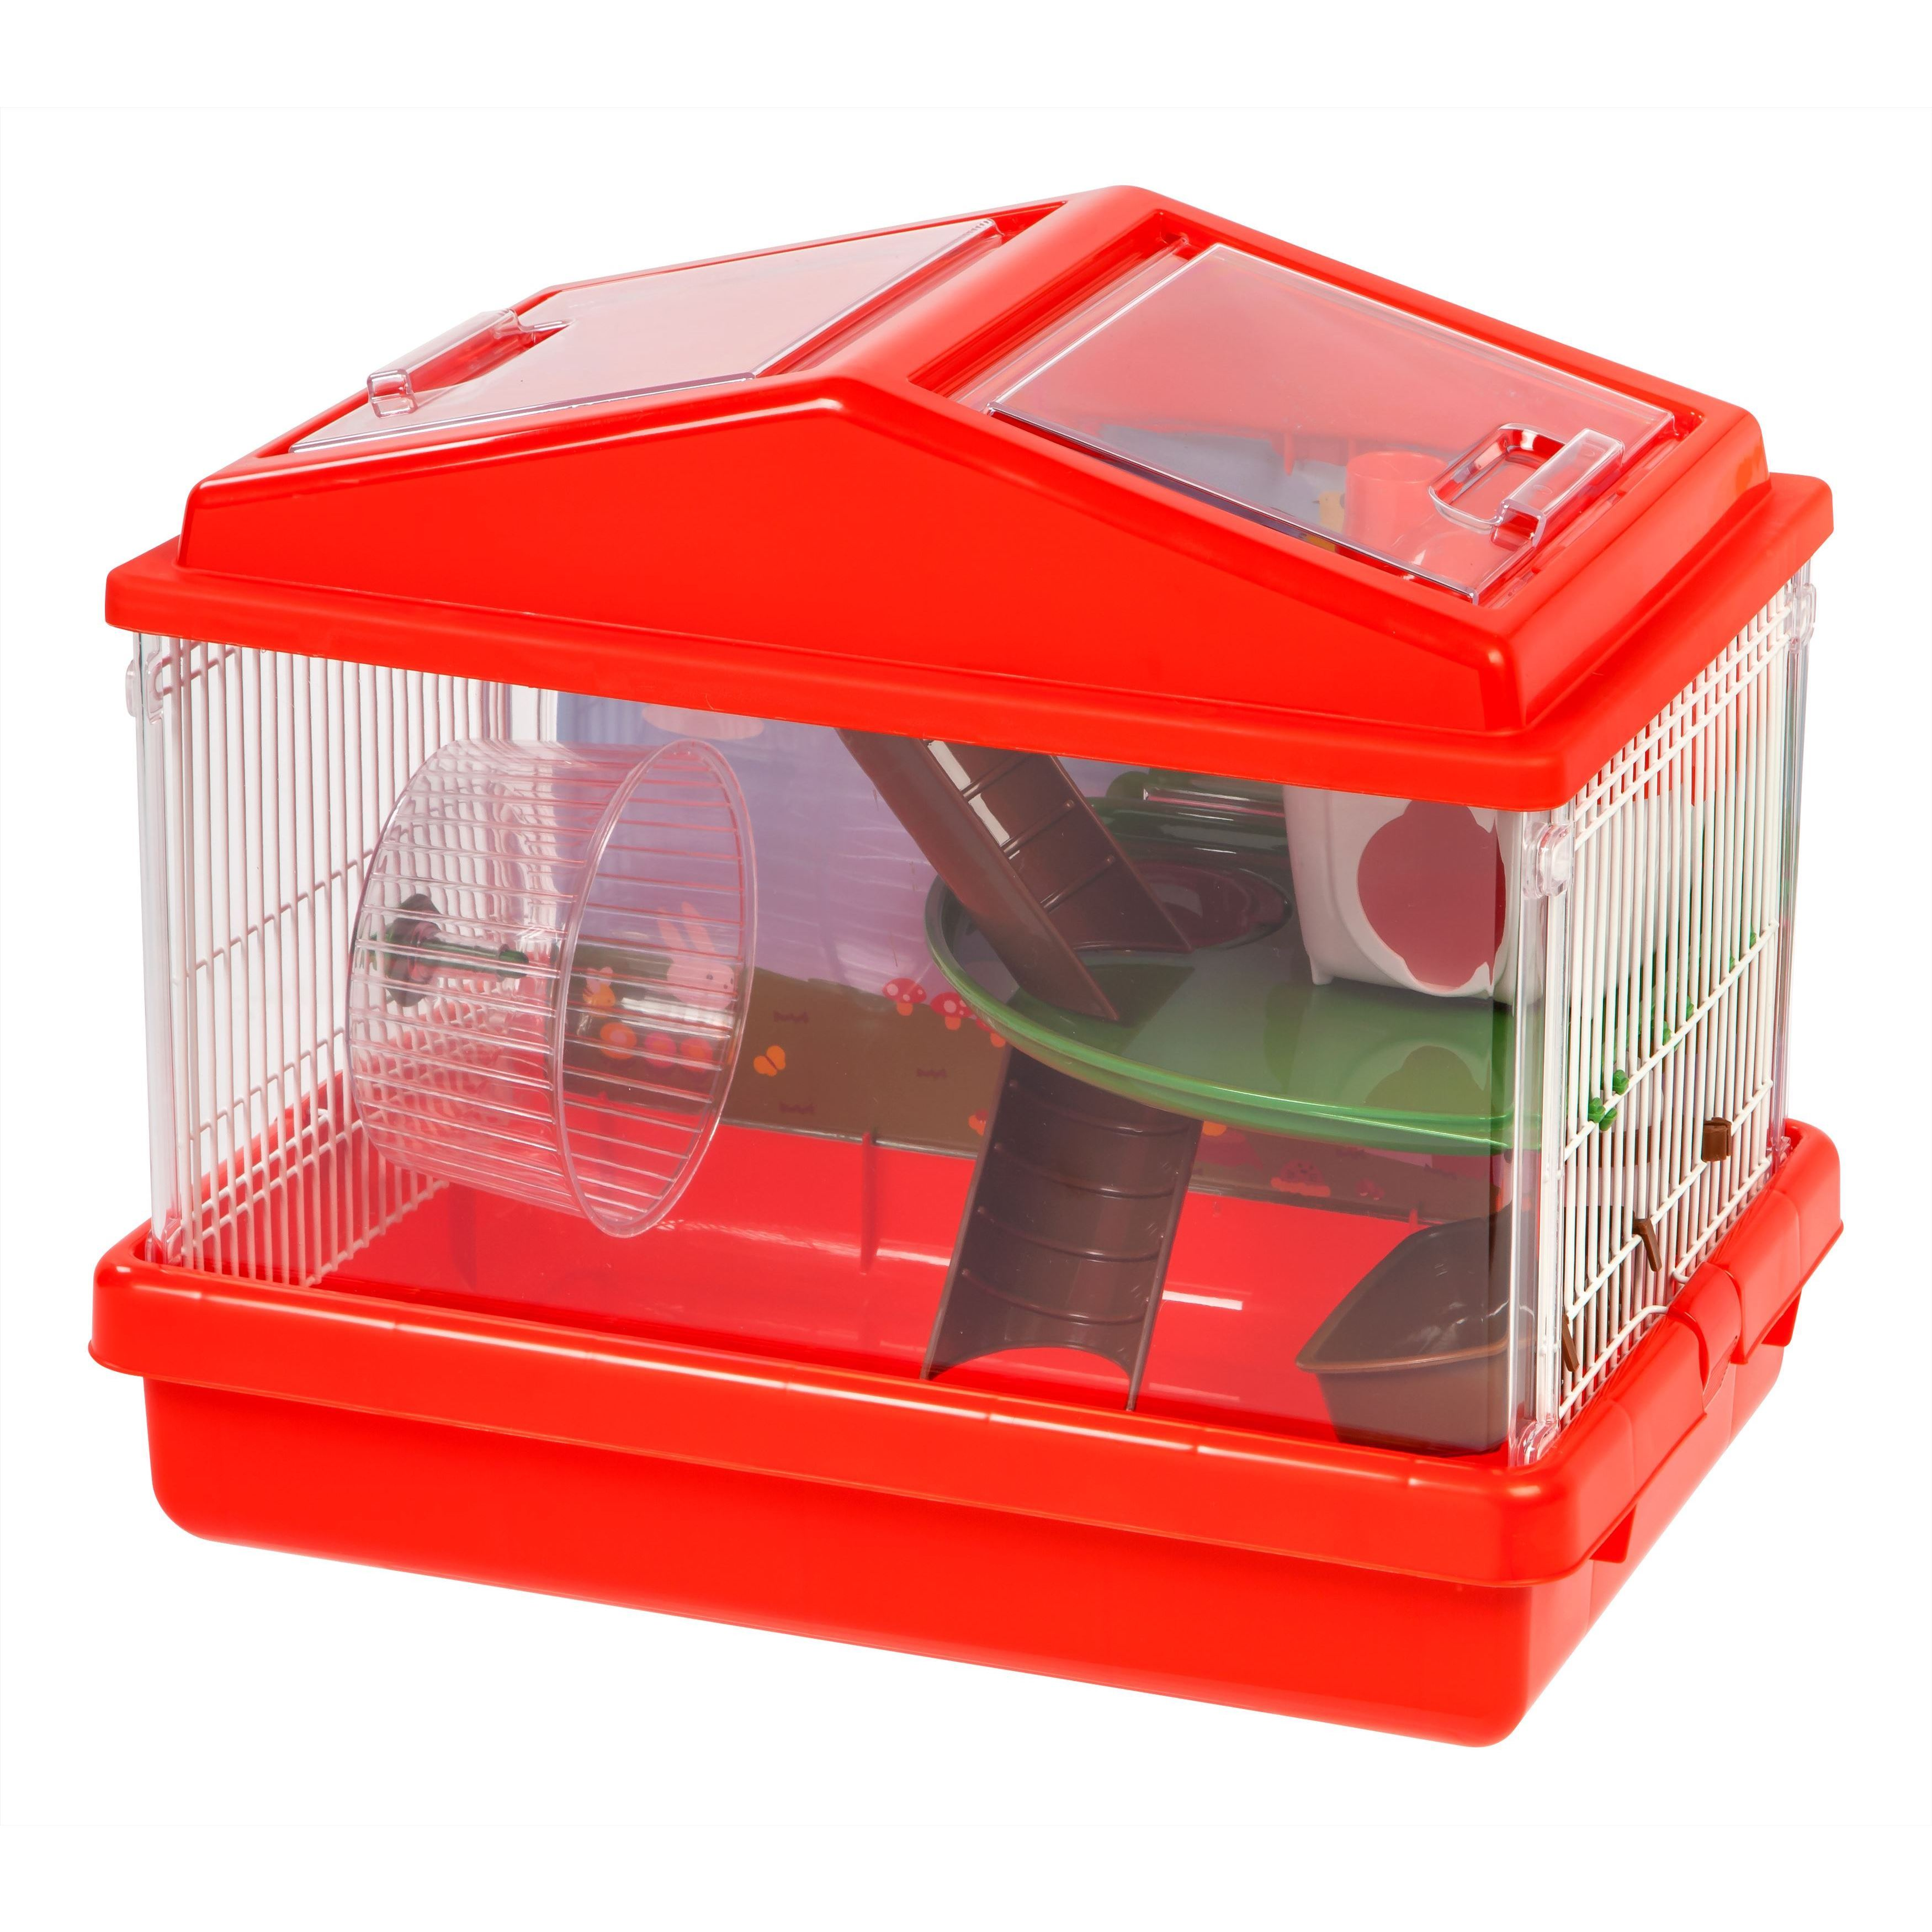 IRIS USA Plastic and Wire 2-tier Hamster Cage (Red)